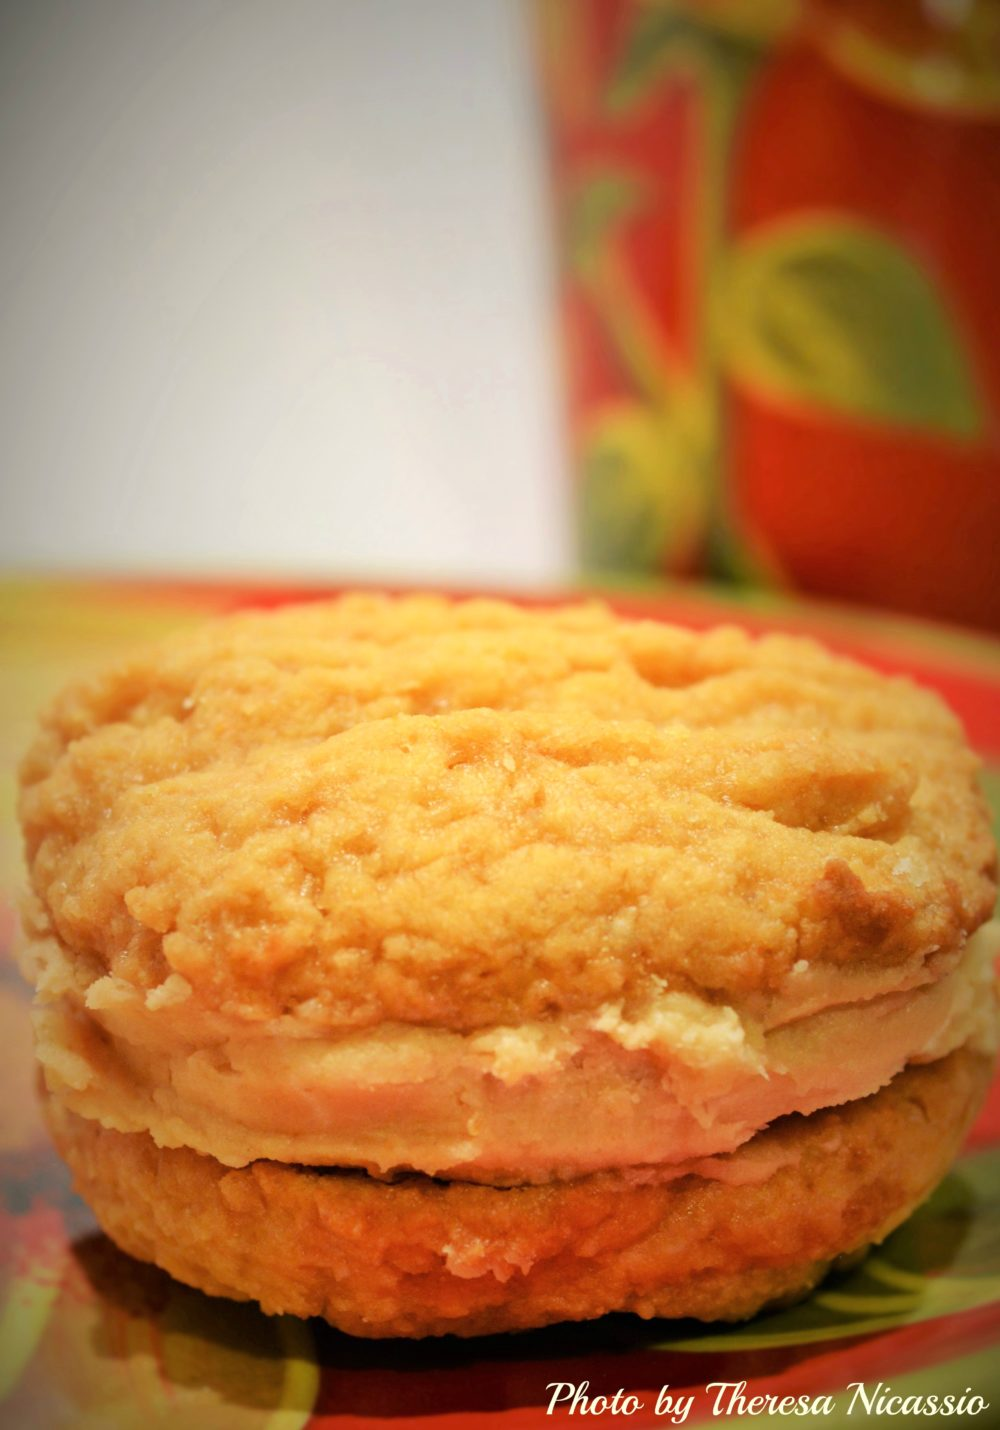 Gluten Free Peanut Butter Cookie Sandwiches Sugar Free Vegan